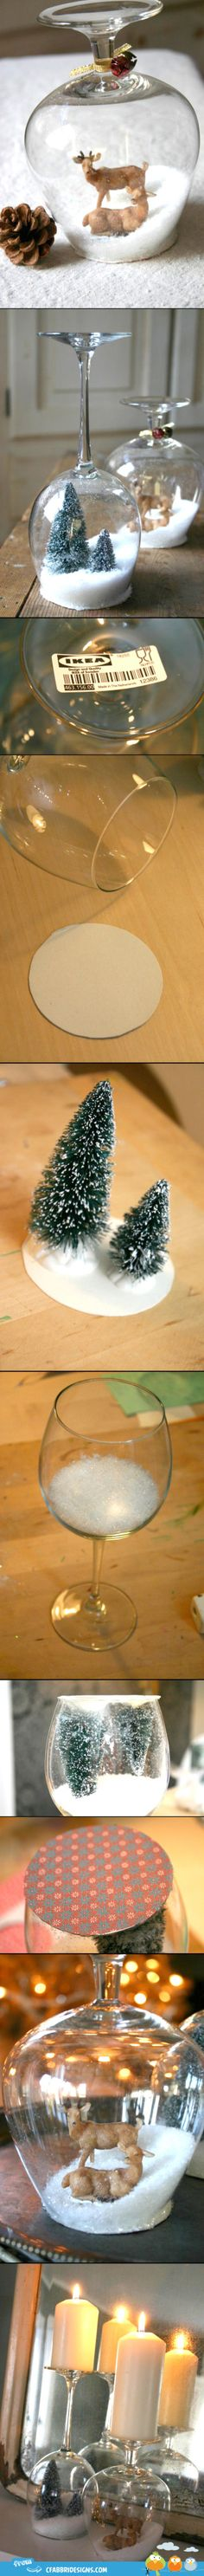 wine glasses/christmass decor/DIY